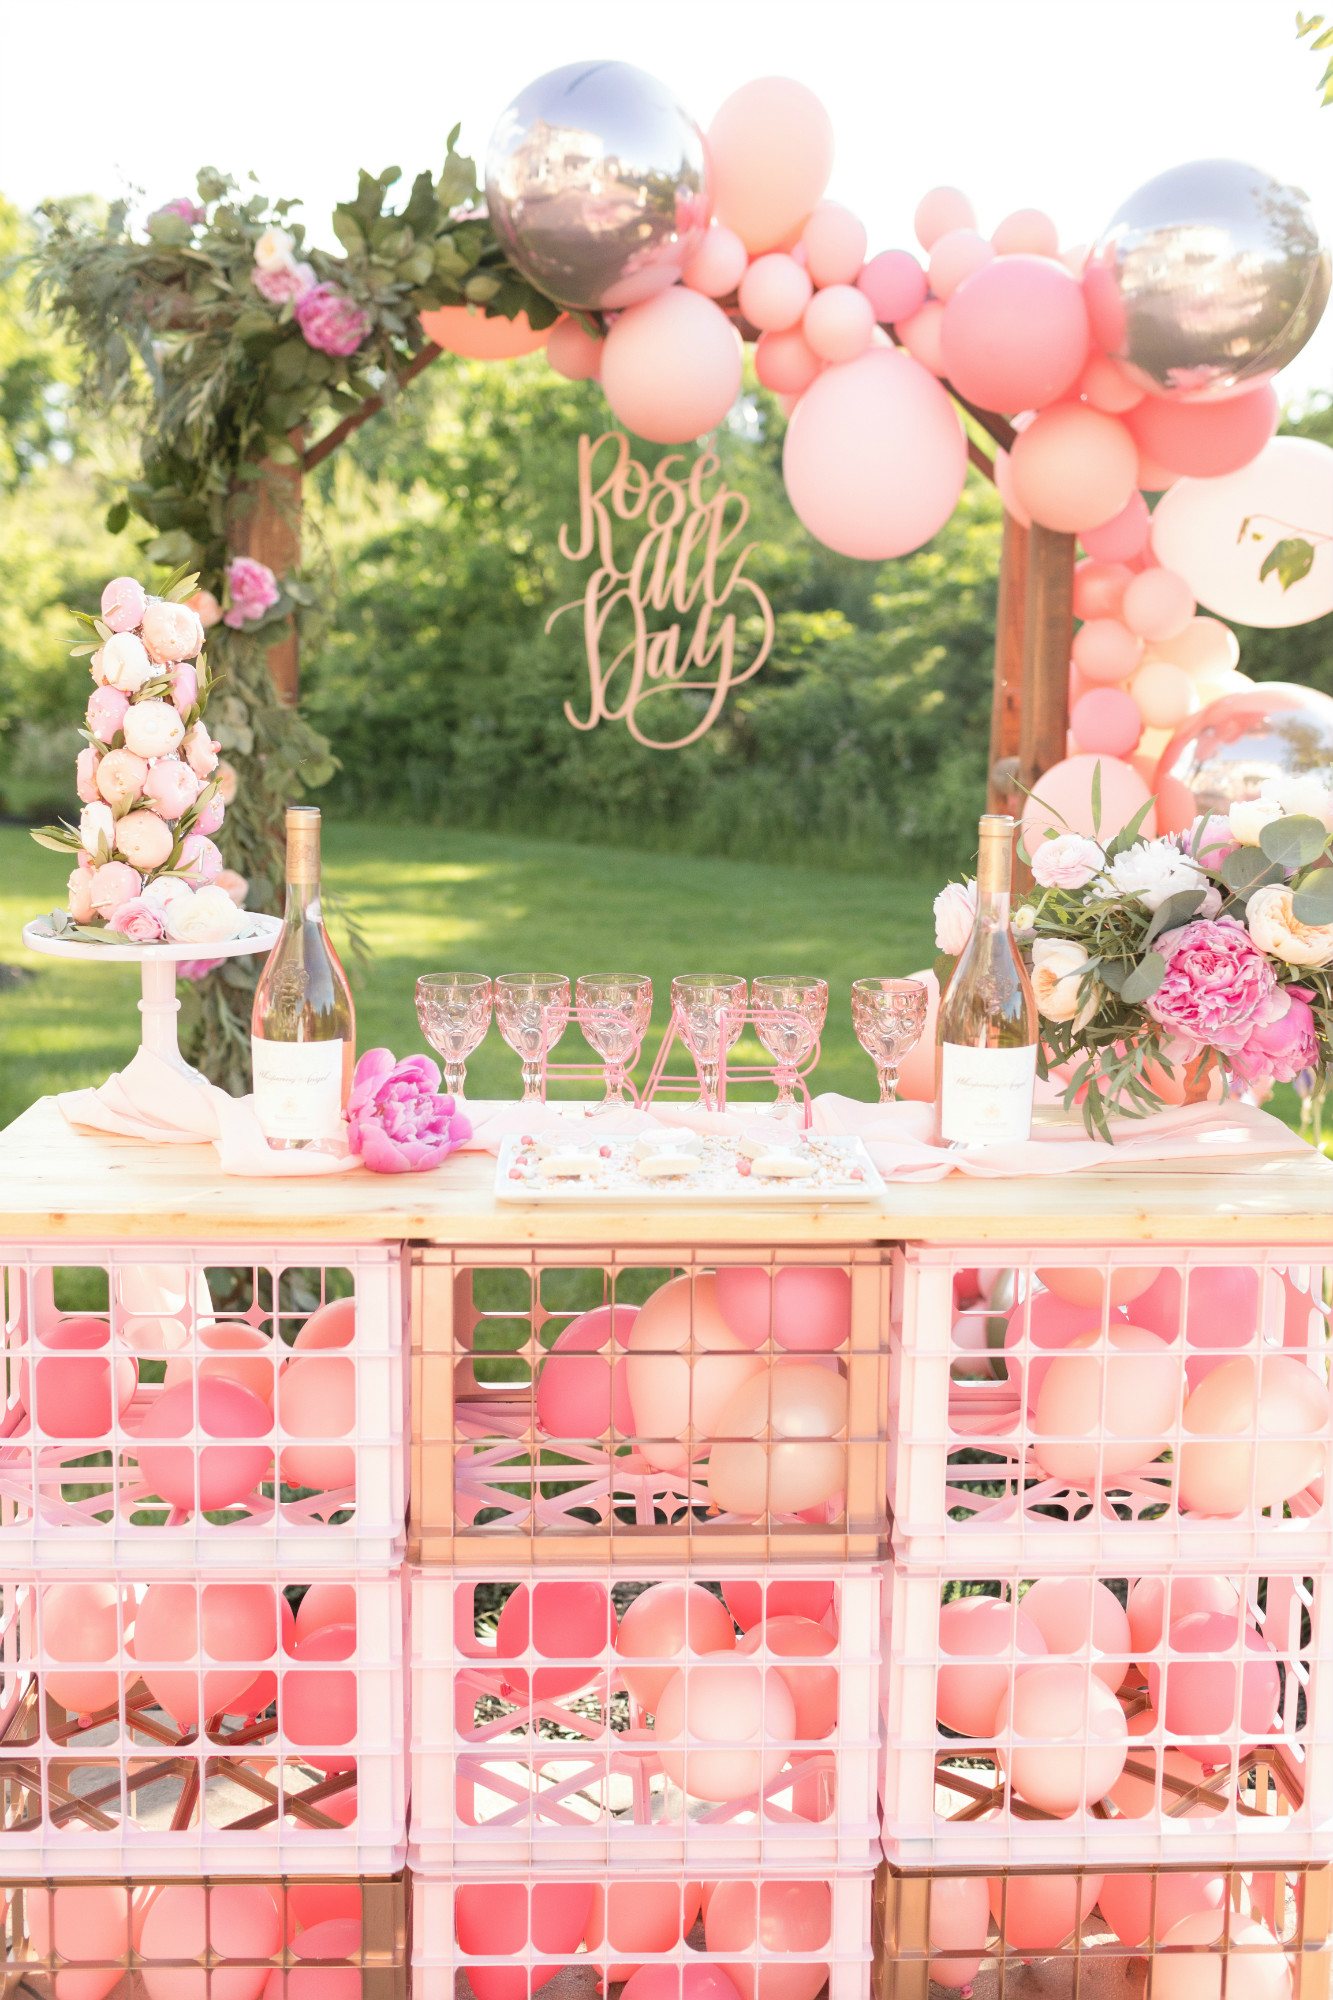 DIY Rose Bar from One Stylish Party Rose All Day Dinner Party | Black Twine